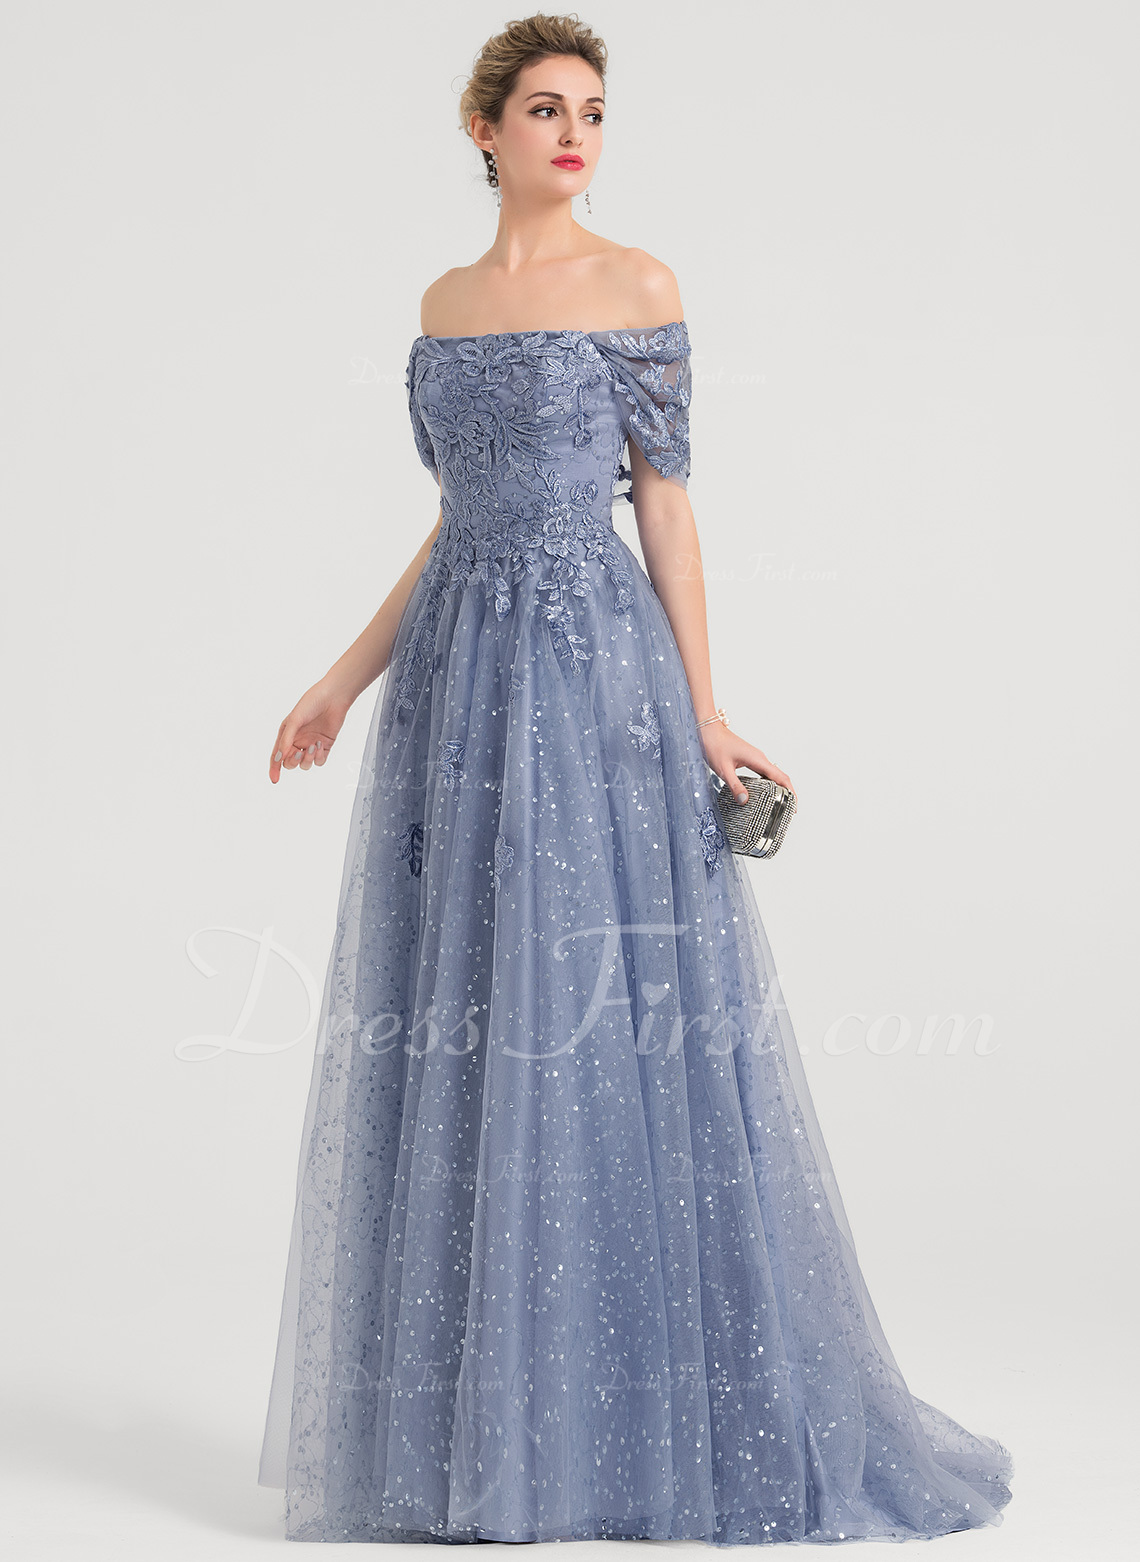 2a1ac4dba93c A-Line/Princess Off-the-Shoulder Sweep Train Tulle Prom Dresses With  Sequins #157176